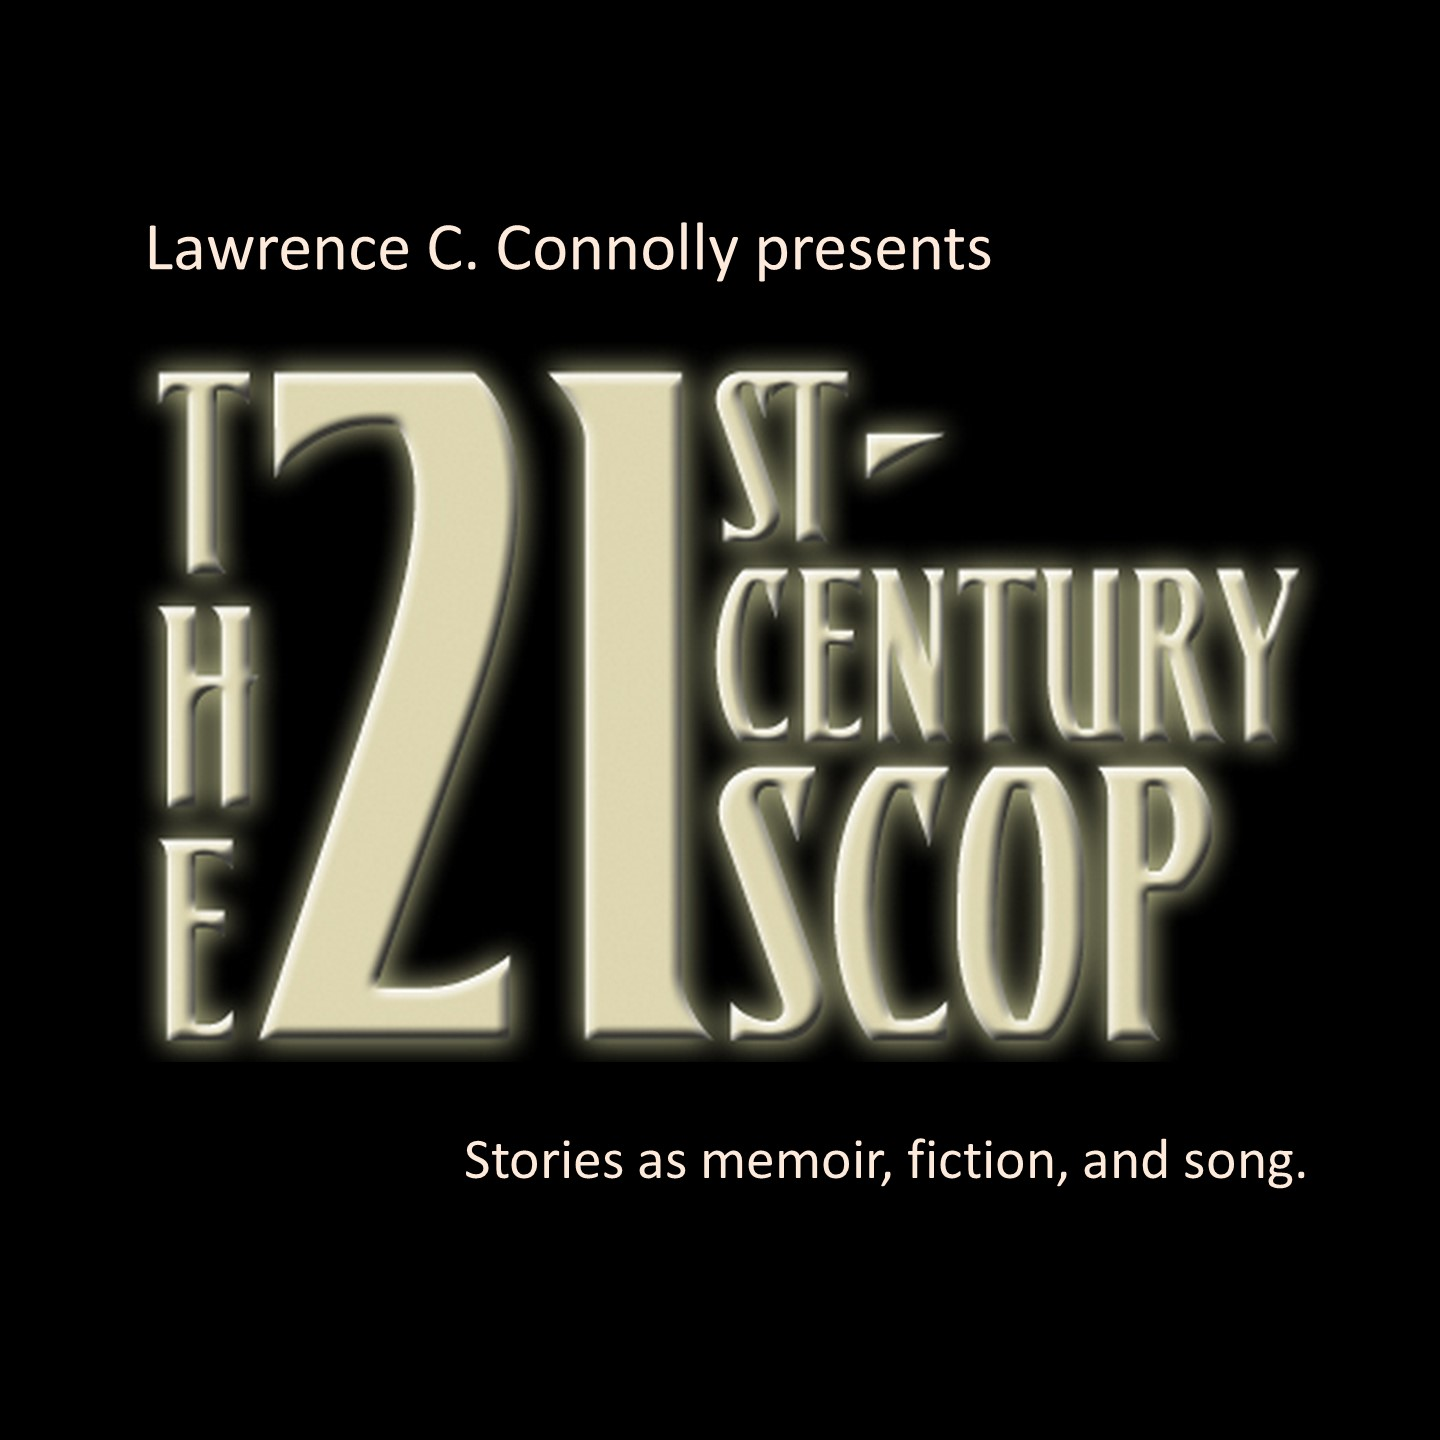 Lawrence C Connolly's: The 21st-Century Scop show art